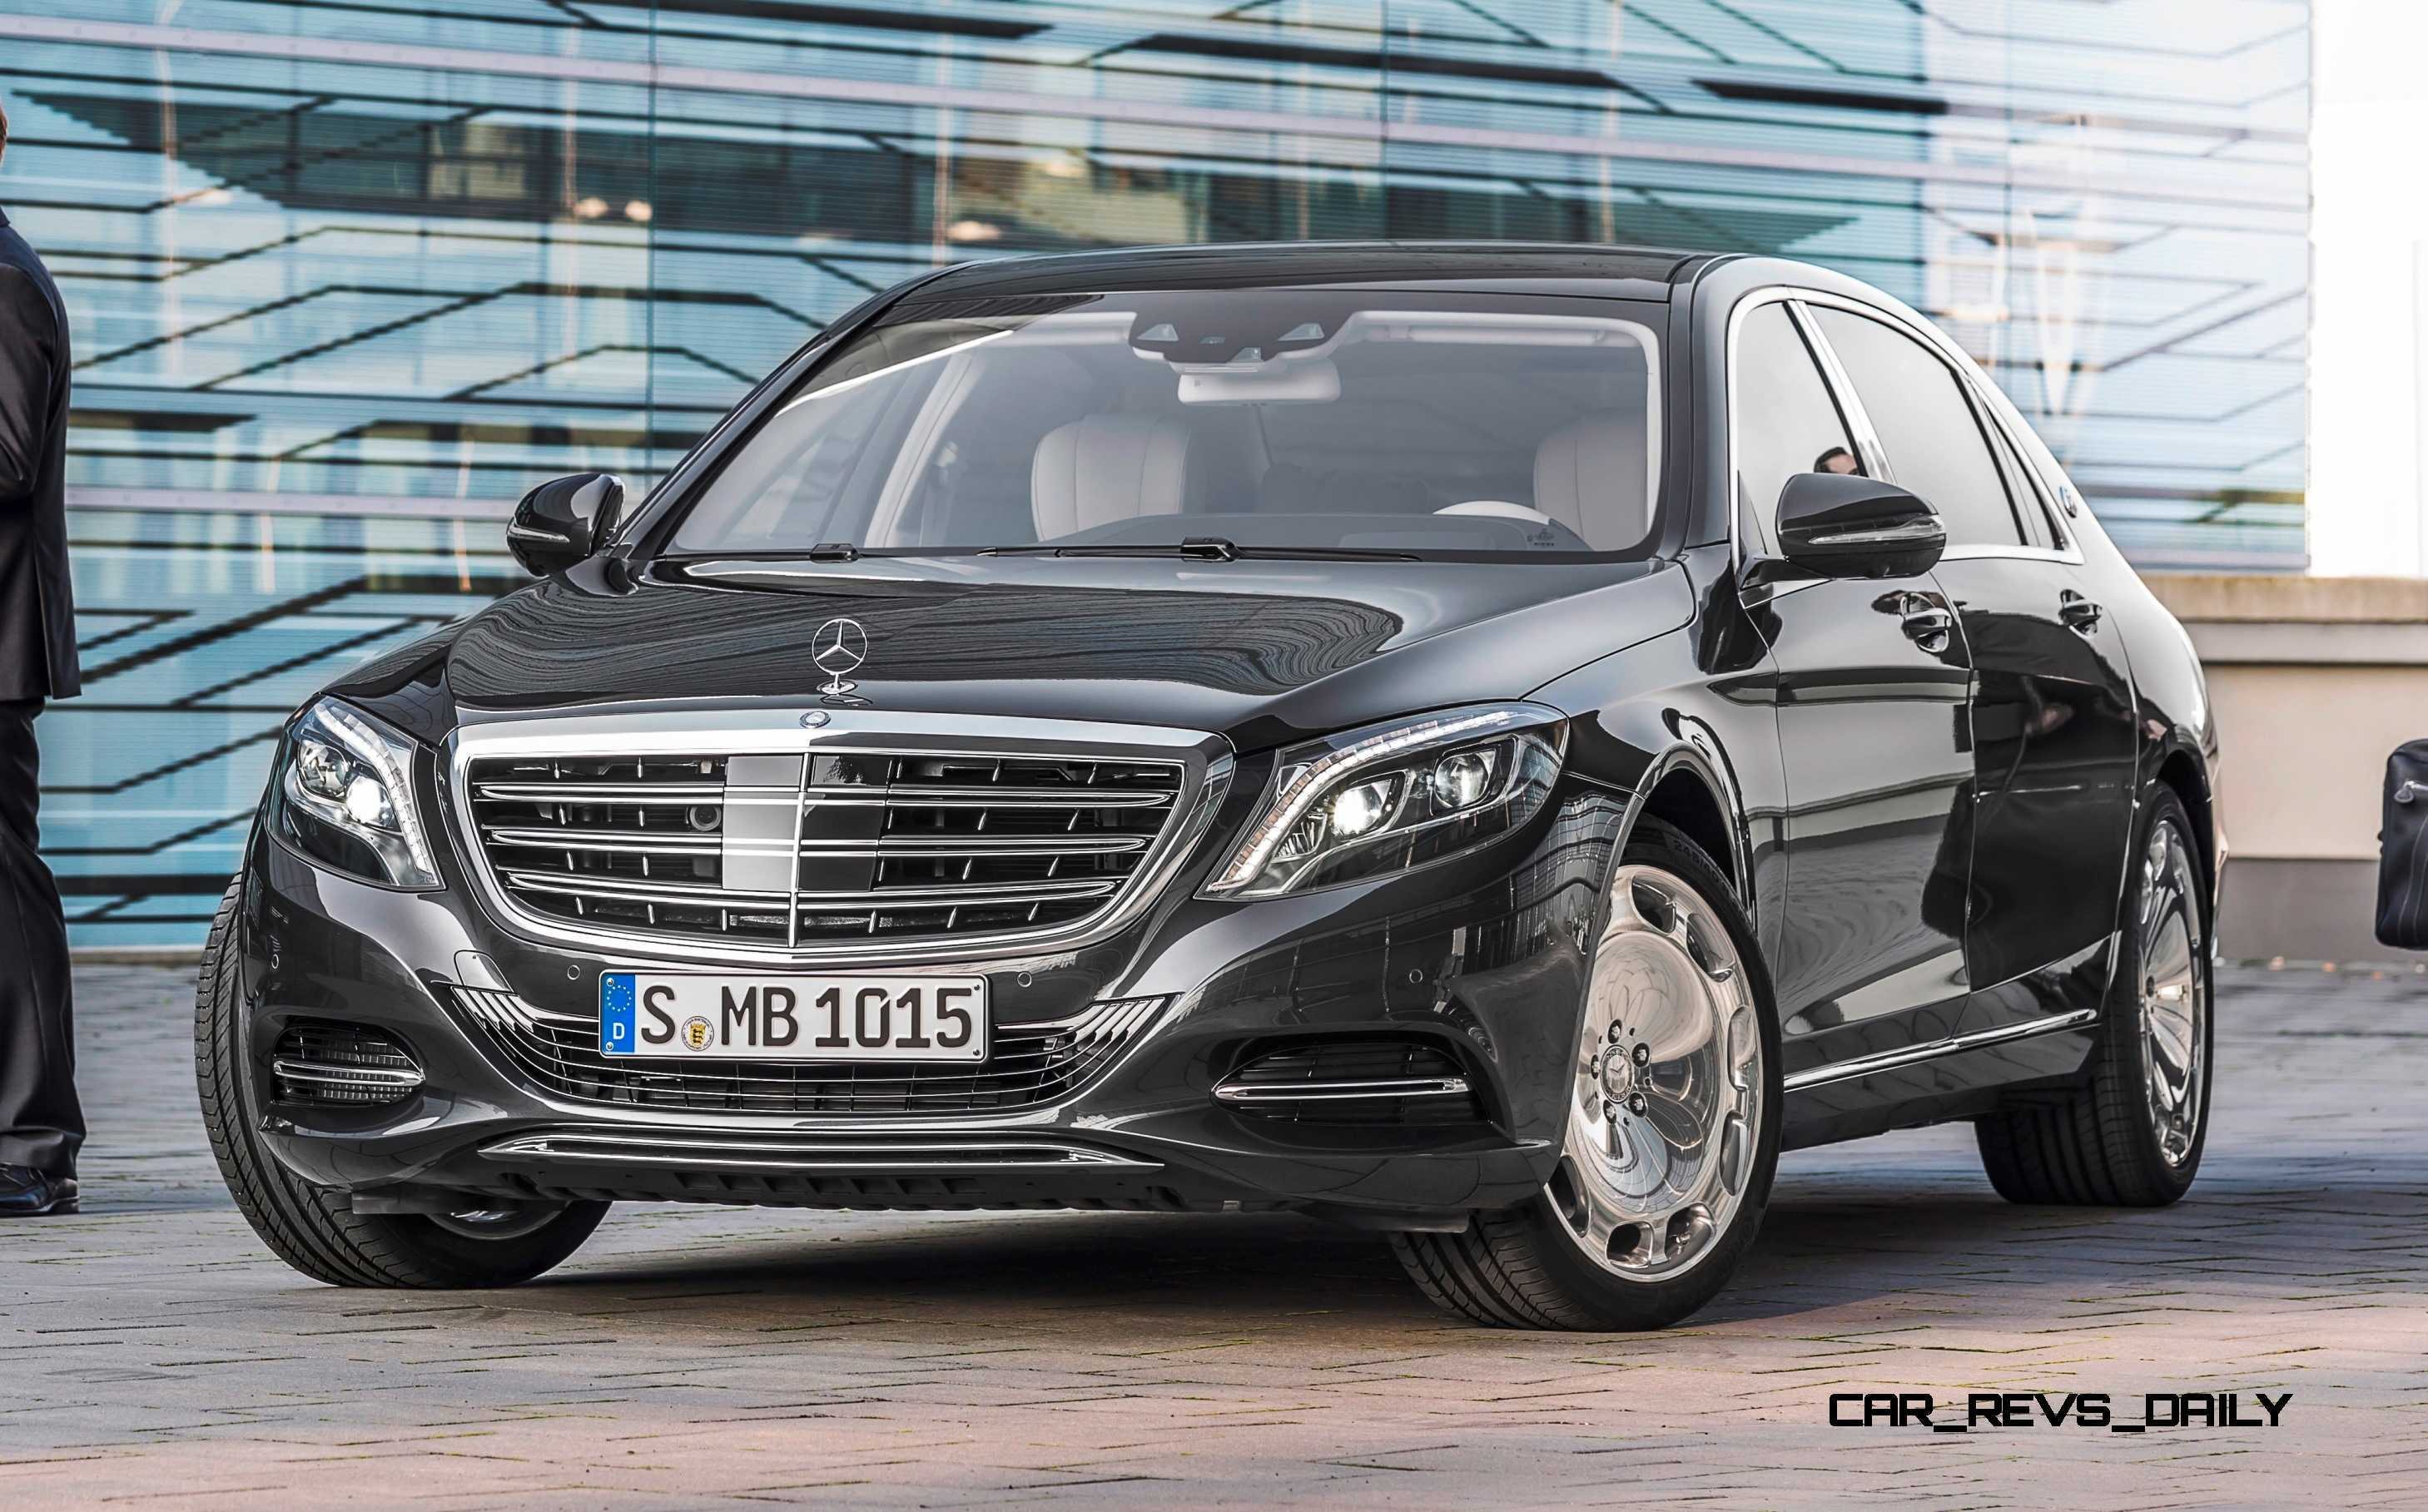 Quietest car tire reviews 2014 autos post for Mercedes benz royale 600 price